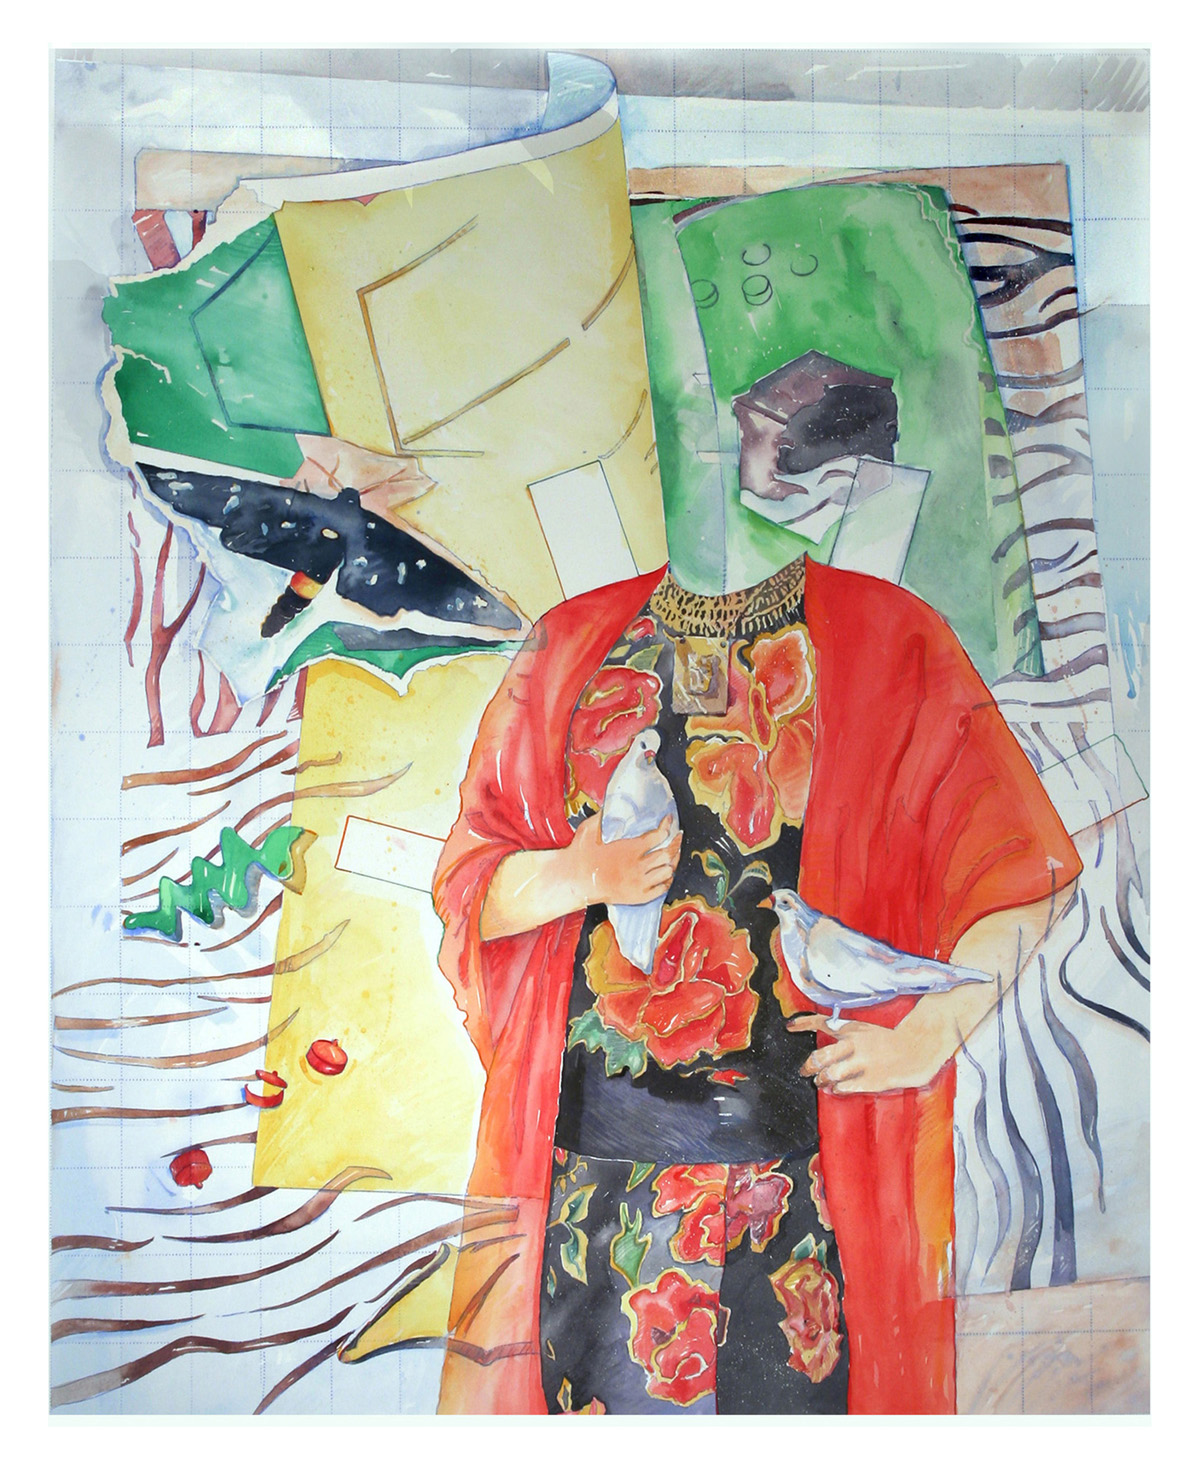 A watercolor painting titled PaperDoll FRIDA woe is me by Brook Overline